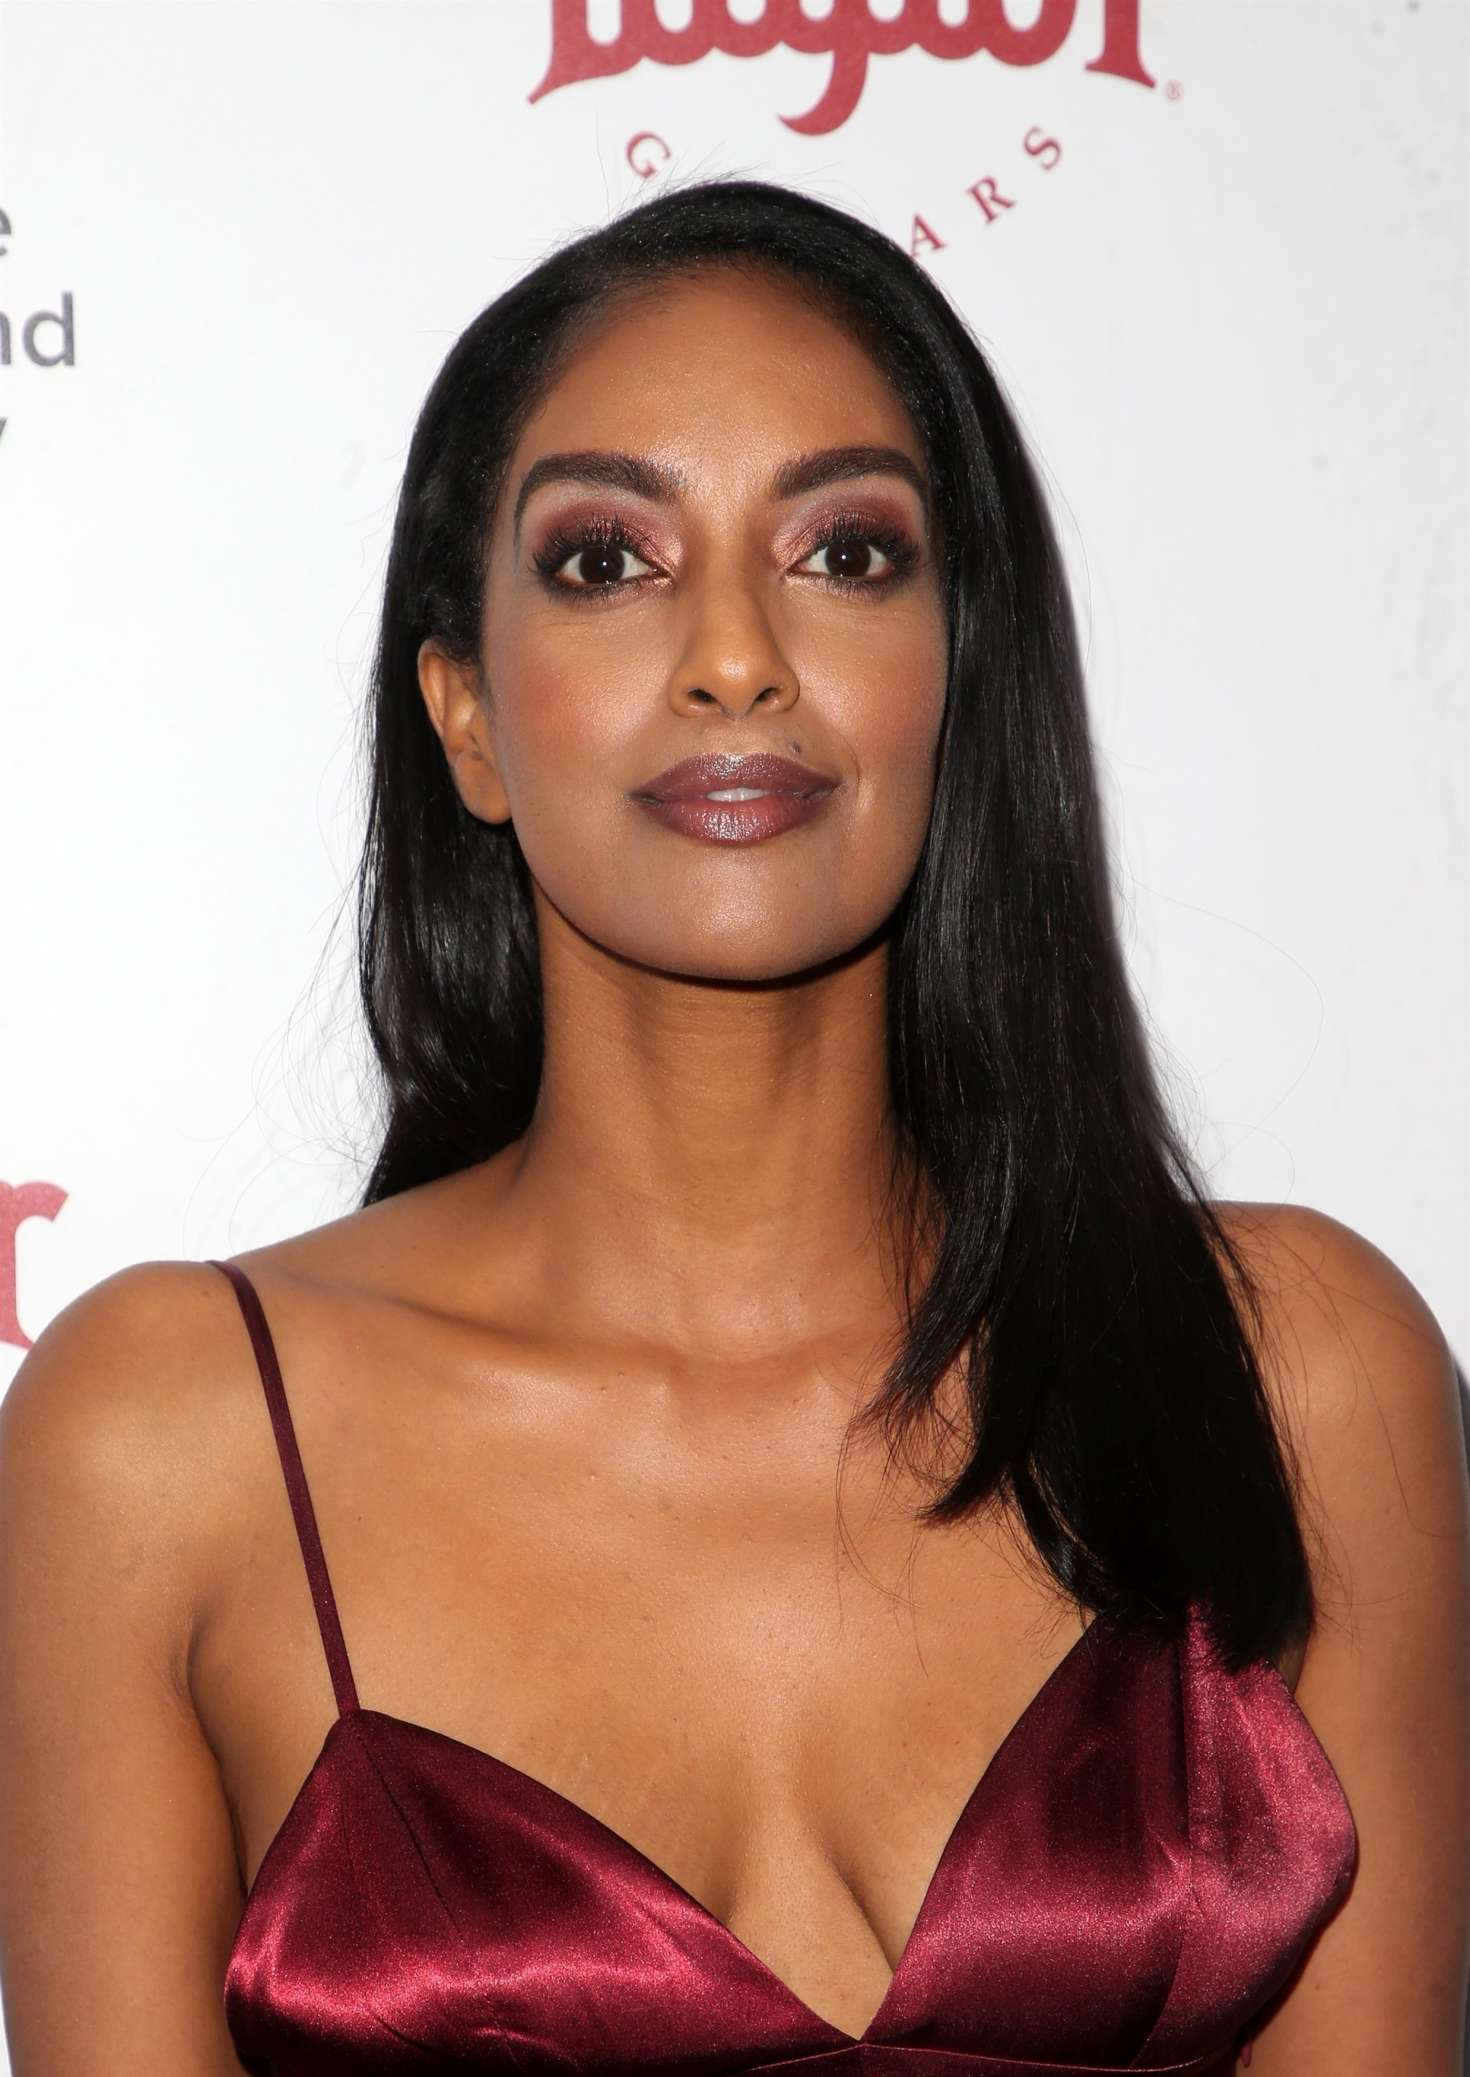 Azie Tesfai 2018 : Azie Tesfai: 2018 UCLAs Institute of the Environment and Sustainability Gala -07